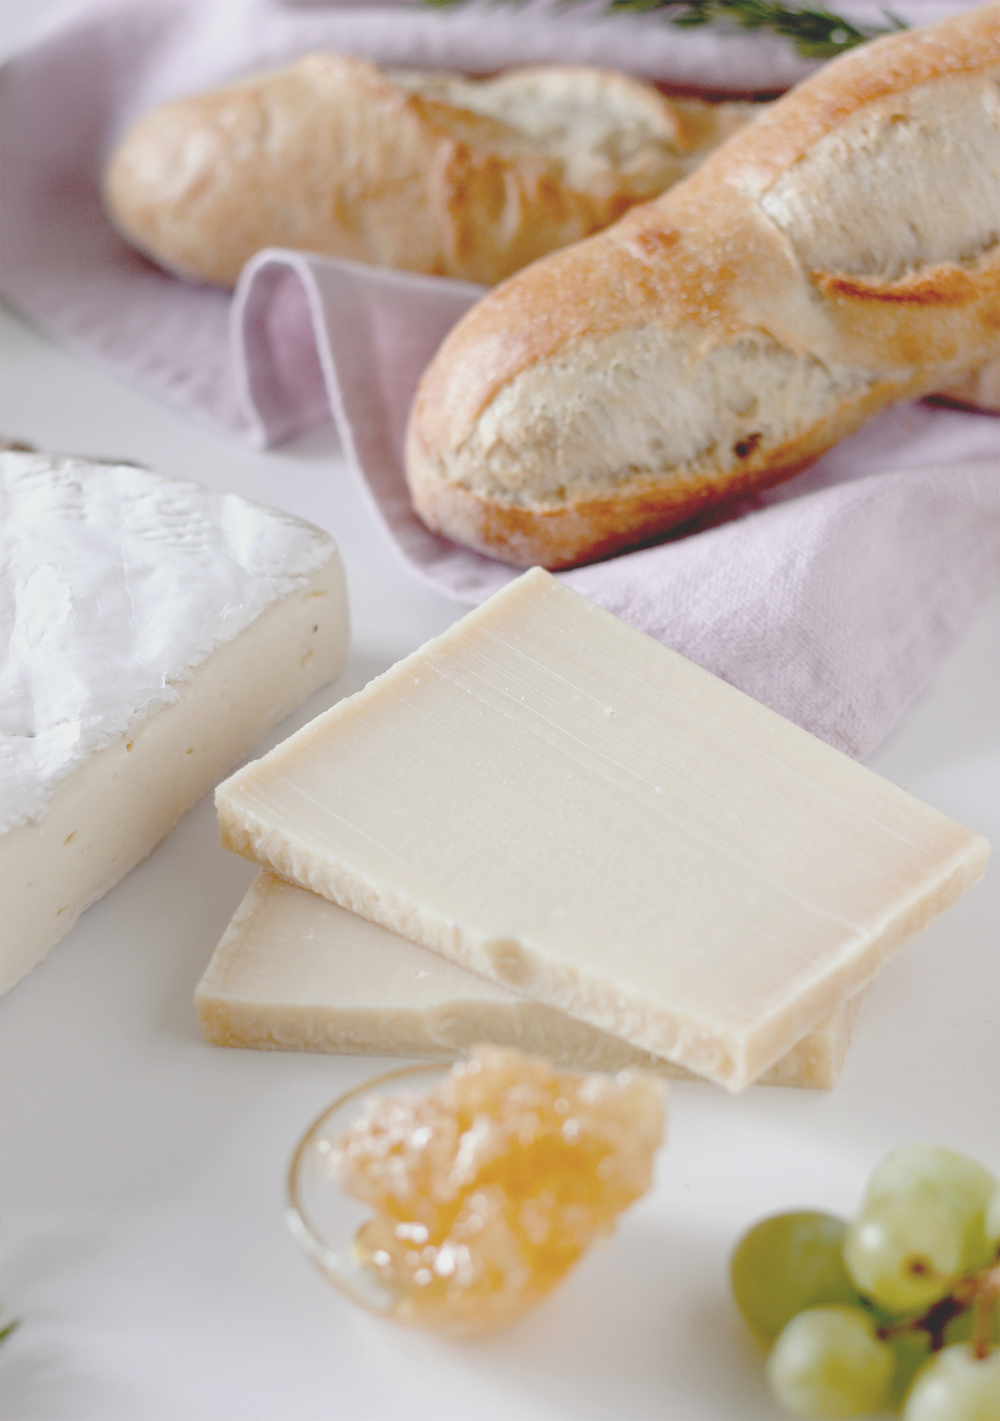 Crisply crust bread, your cheeseplate is incomplete without it | A Fabulous Fete